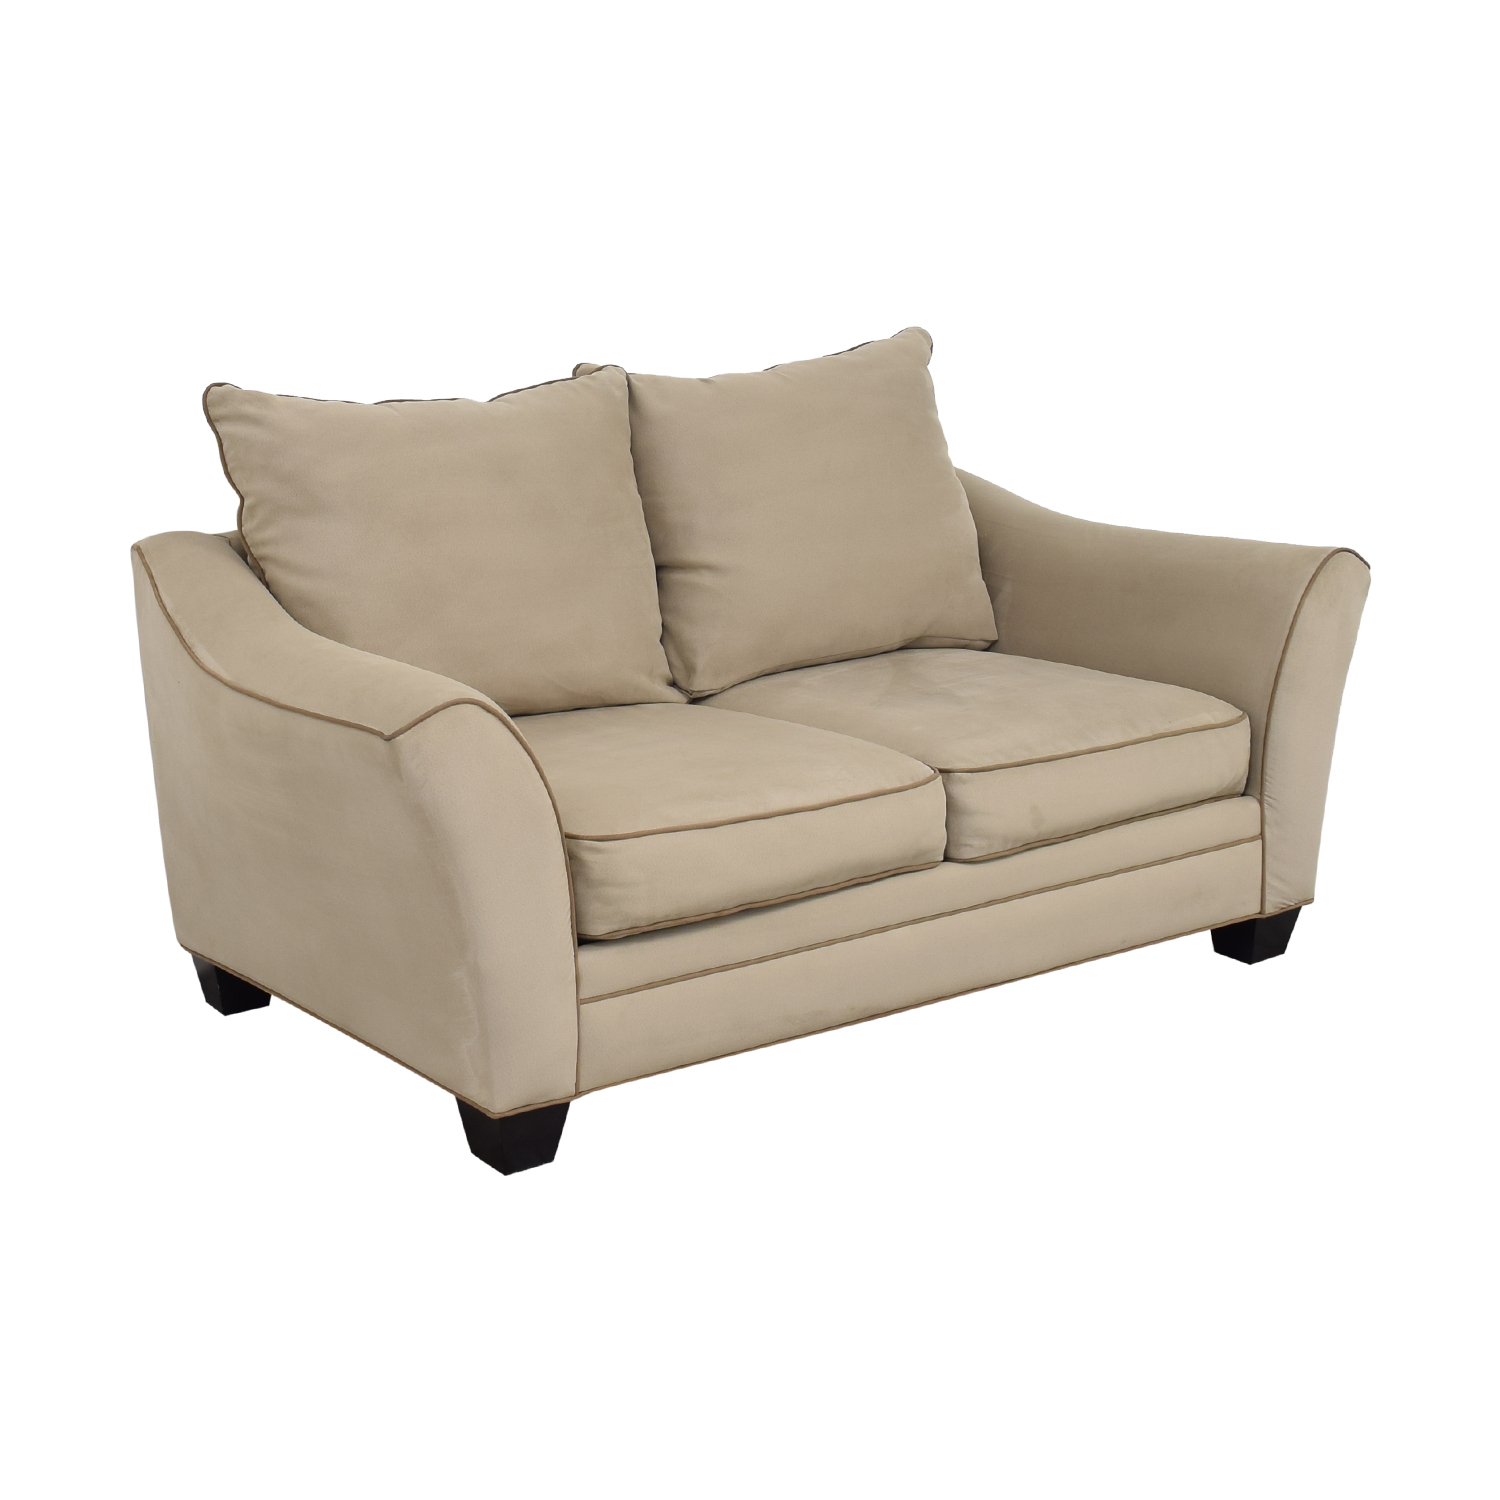 shop Raymour & Flanigan Foresthill Loveseat Raymour & Flanigan Loveseats